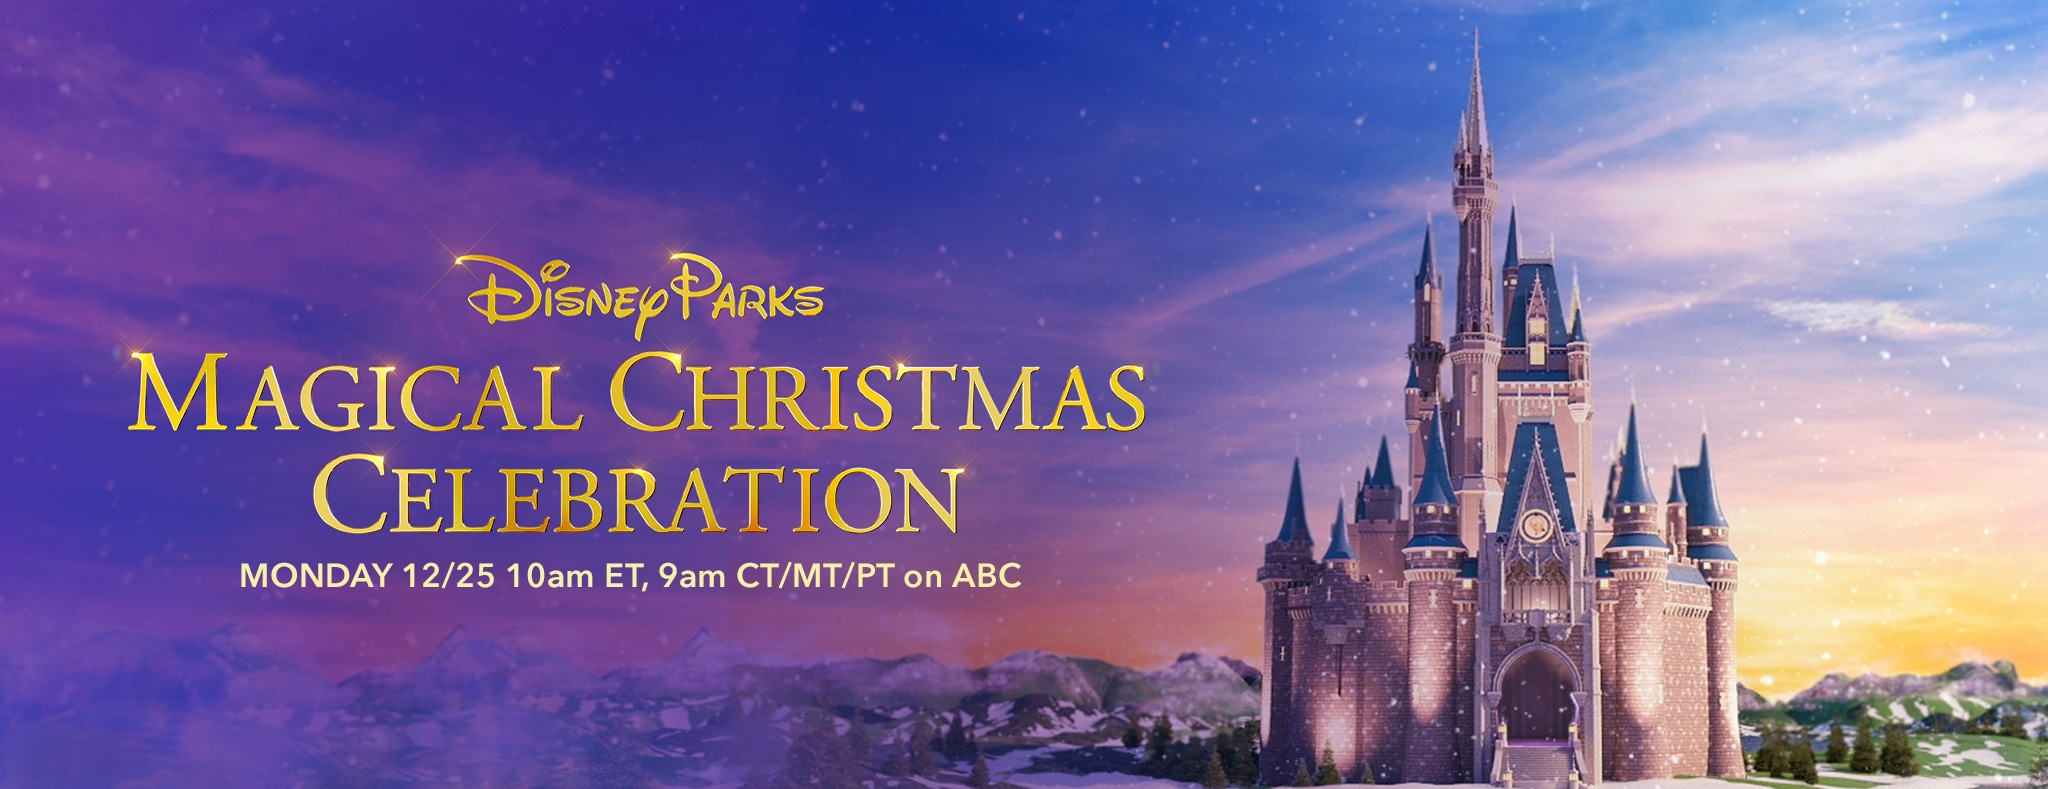 Disney Parks Magical Christmas Celebration MONDAY 12/25 10am ET, 9am CT/MT/PT on ABC